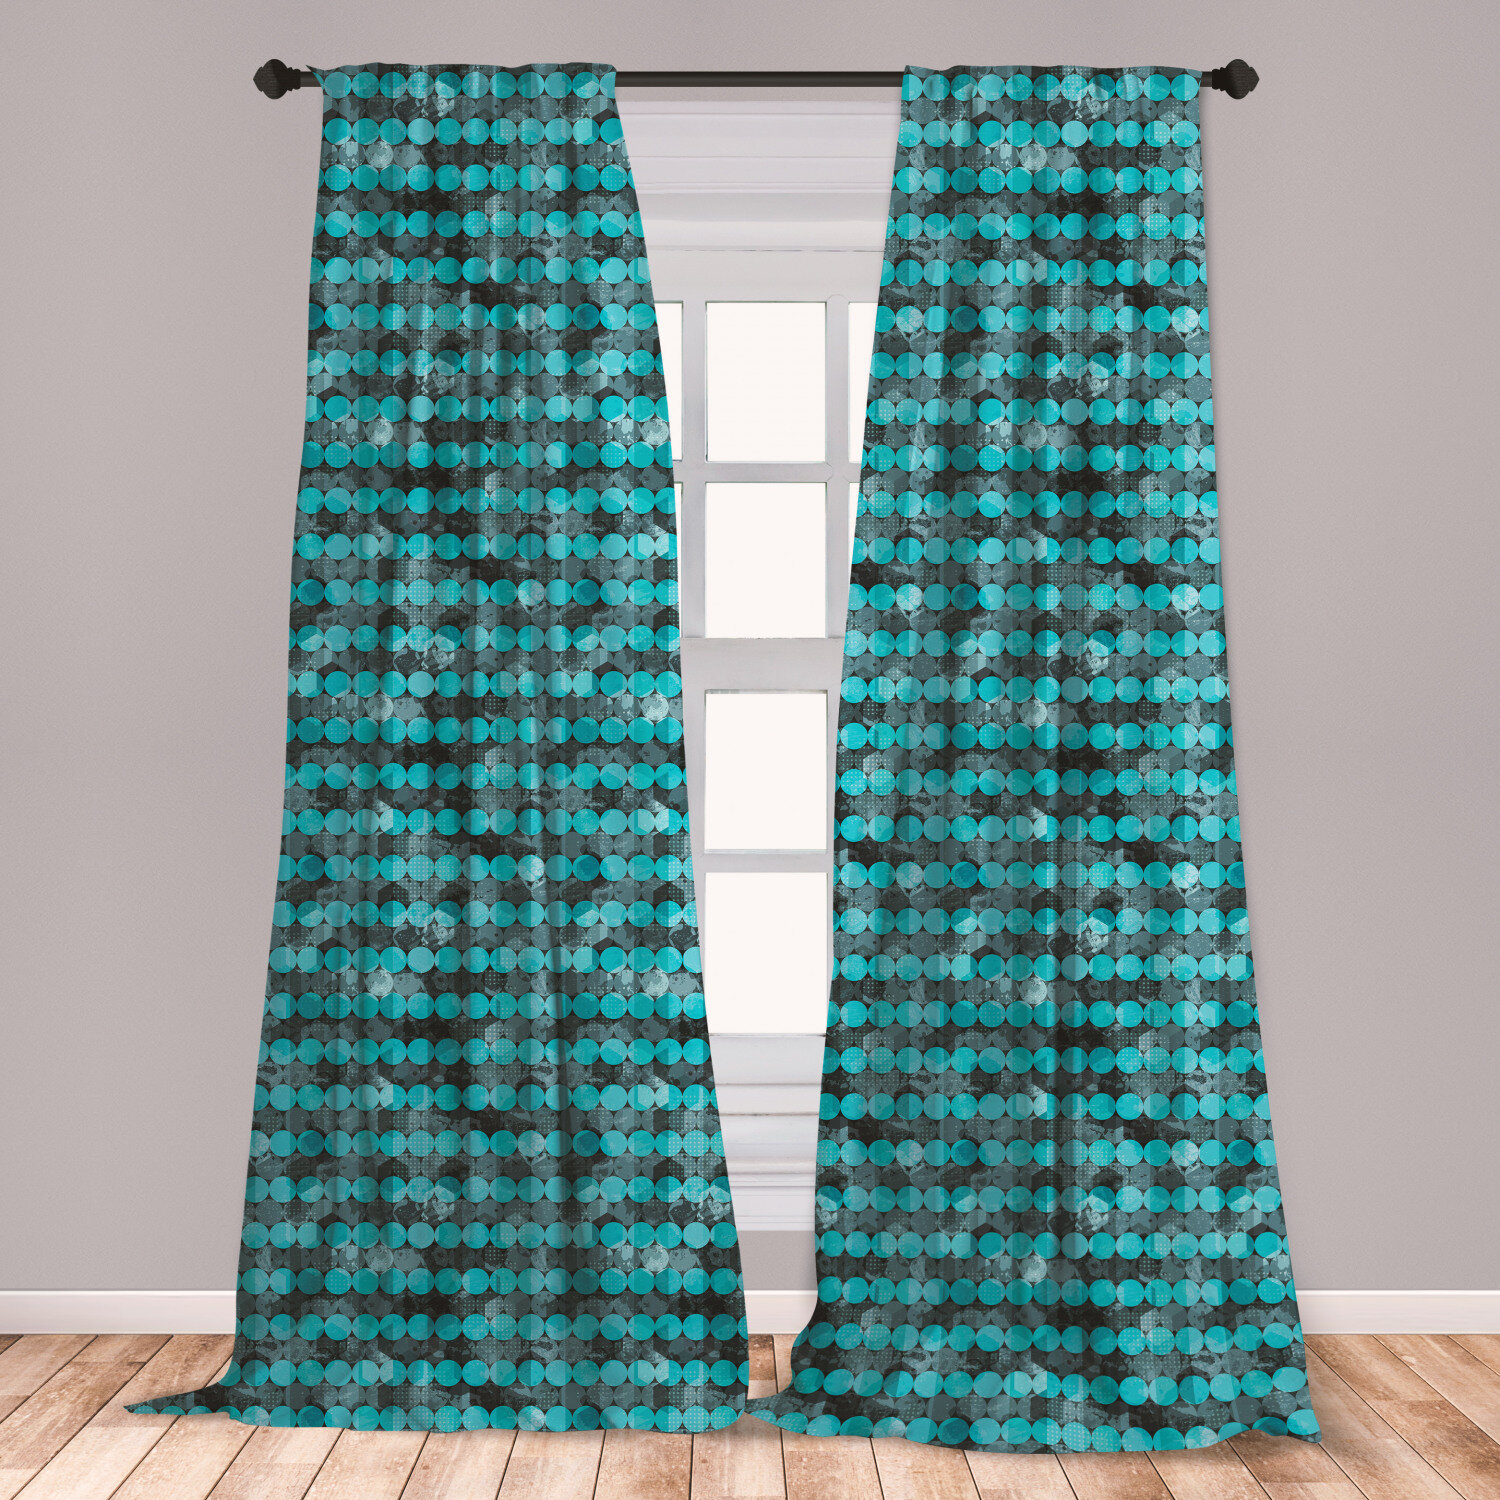 East Urban Home Ambesonne Grunge Curtains Contemporary Art Inspiration With Dots In Cold Colors Freezing Cool Winter Ice Window Treatments 2 Panel Set For Living Room Bedroom Decor 56 X 63 Pale